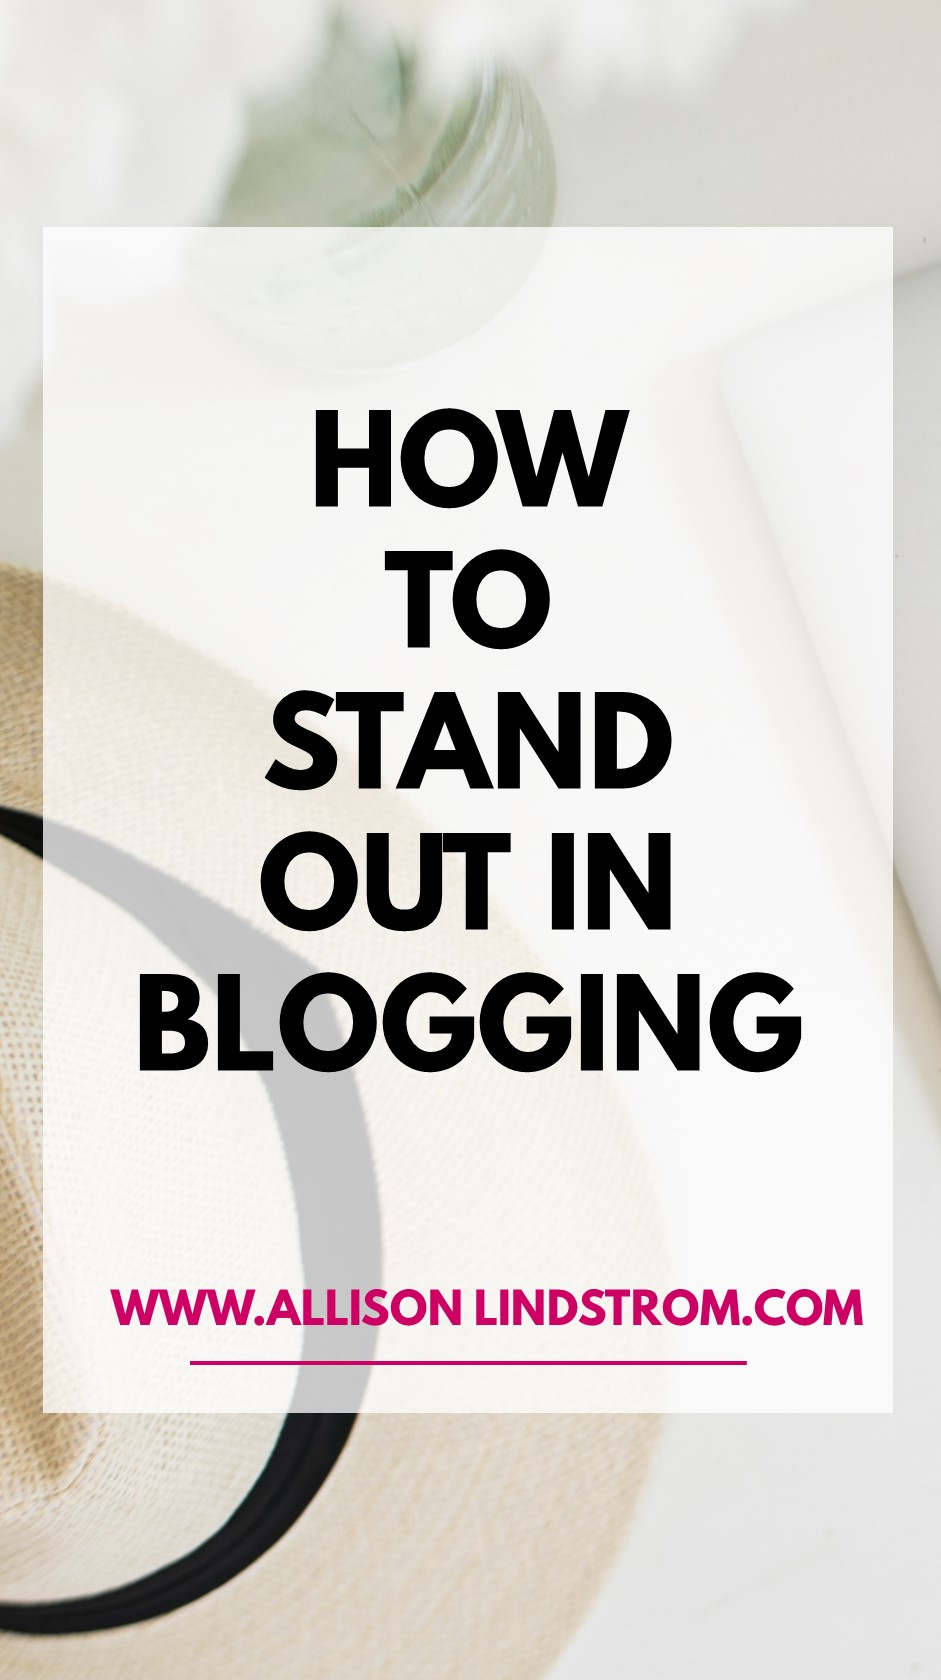 """I want to make money blogging but there are so many bloggers already! How can I stand out?"" I get this question all the time and I've got some tips for you that go beyond just ""be yourself."" You can be a successful blogger, even if you're shy or if your niche is crowded! ● HOW TO BE DIFFERENT IN BLOGGING SO YOU CAN MAKE MONEY FROM HOME"